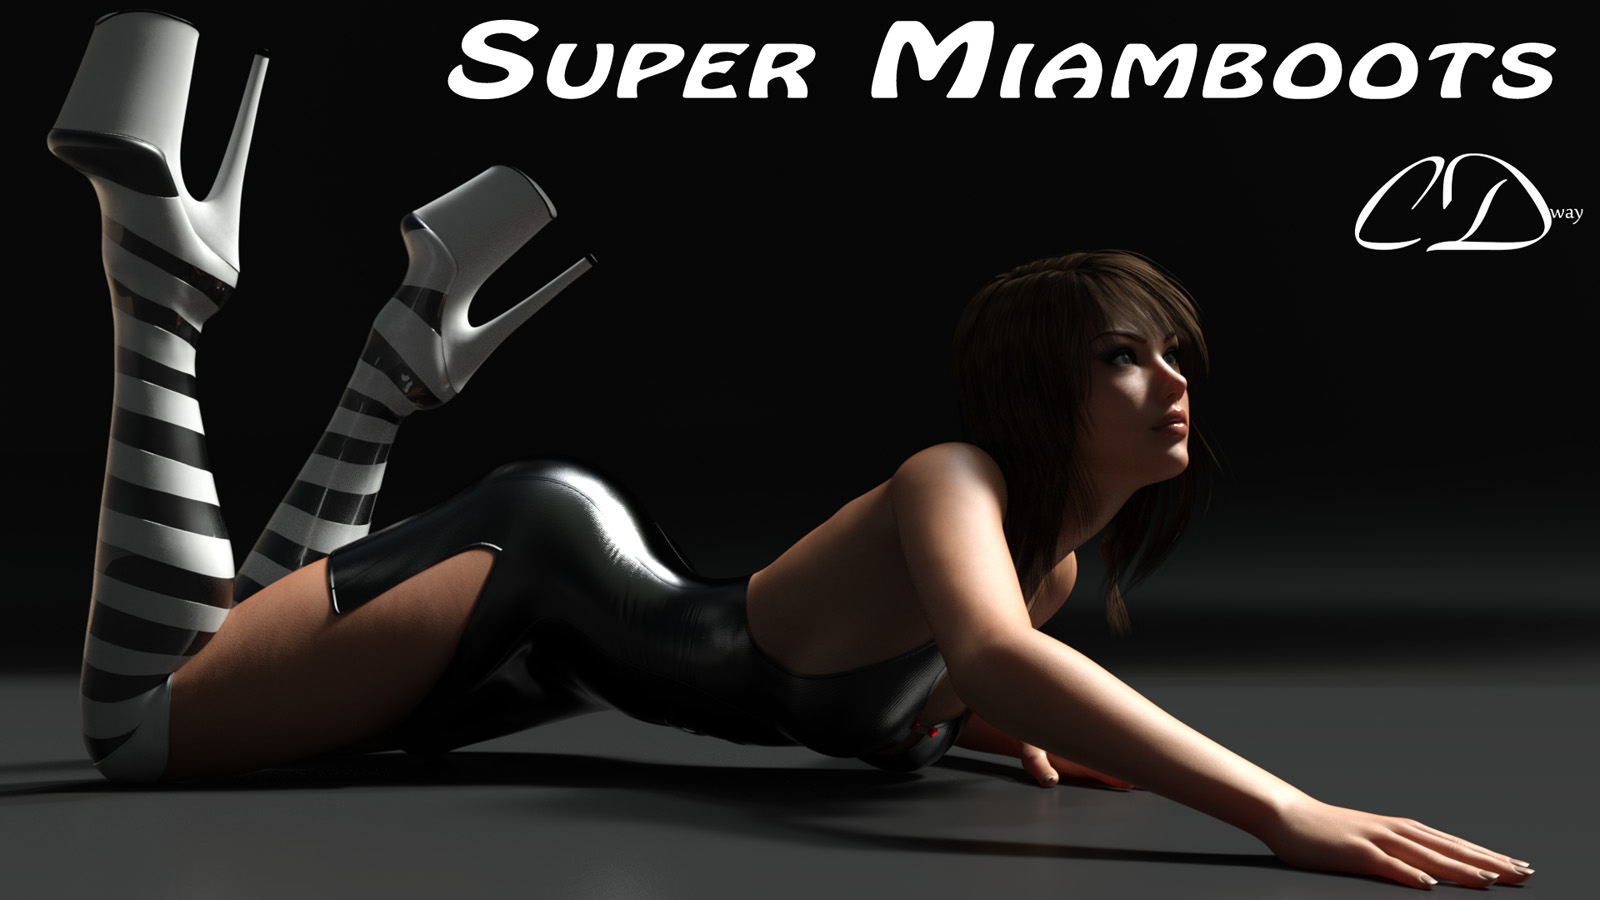 Super Miamboots for g3f